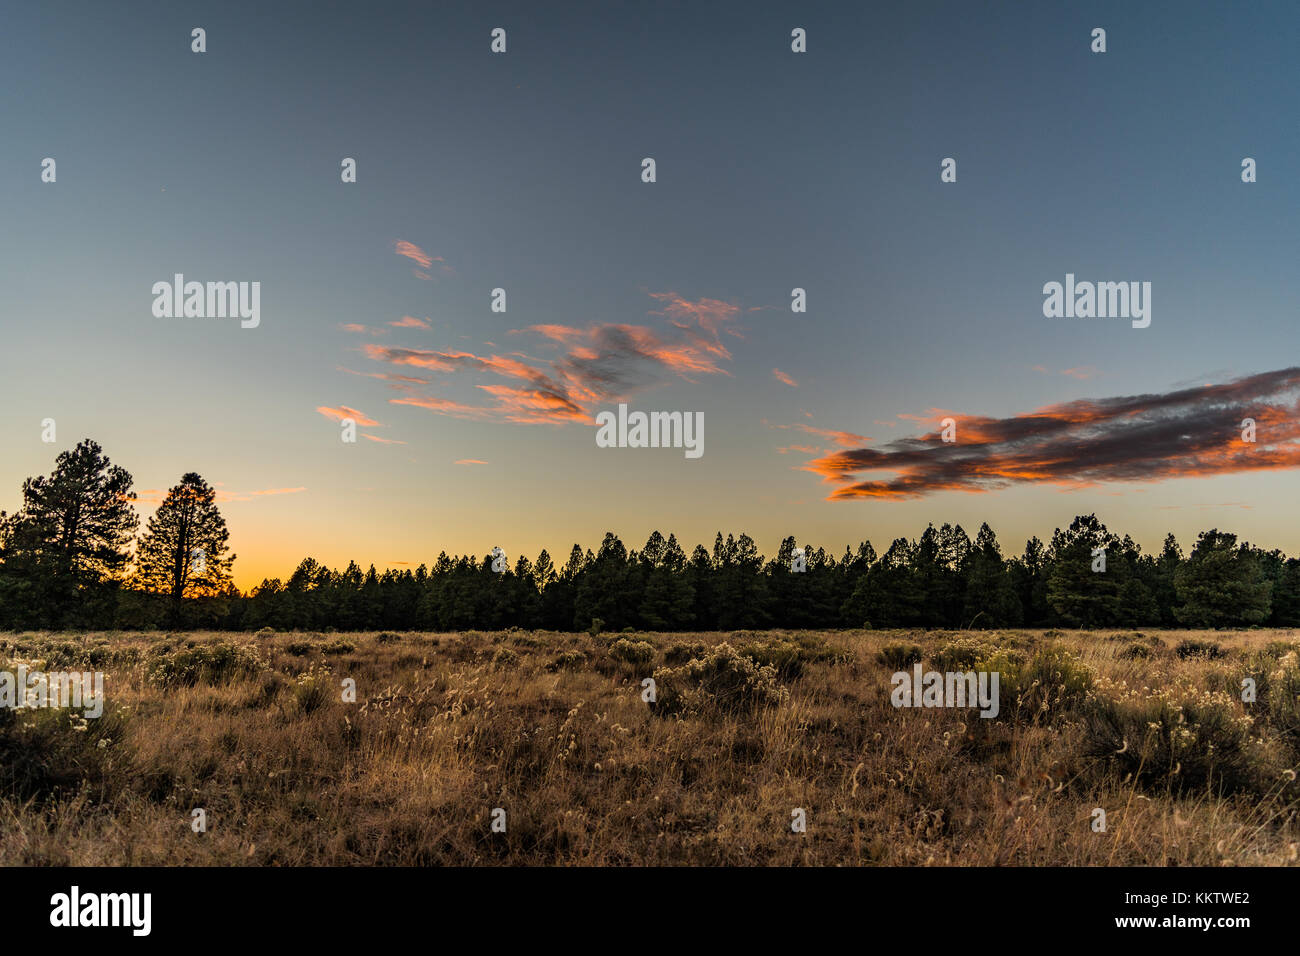 Pine forest in Arizona amidst a low sunset. - Stock Image